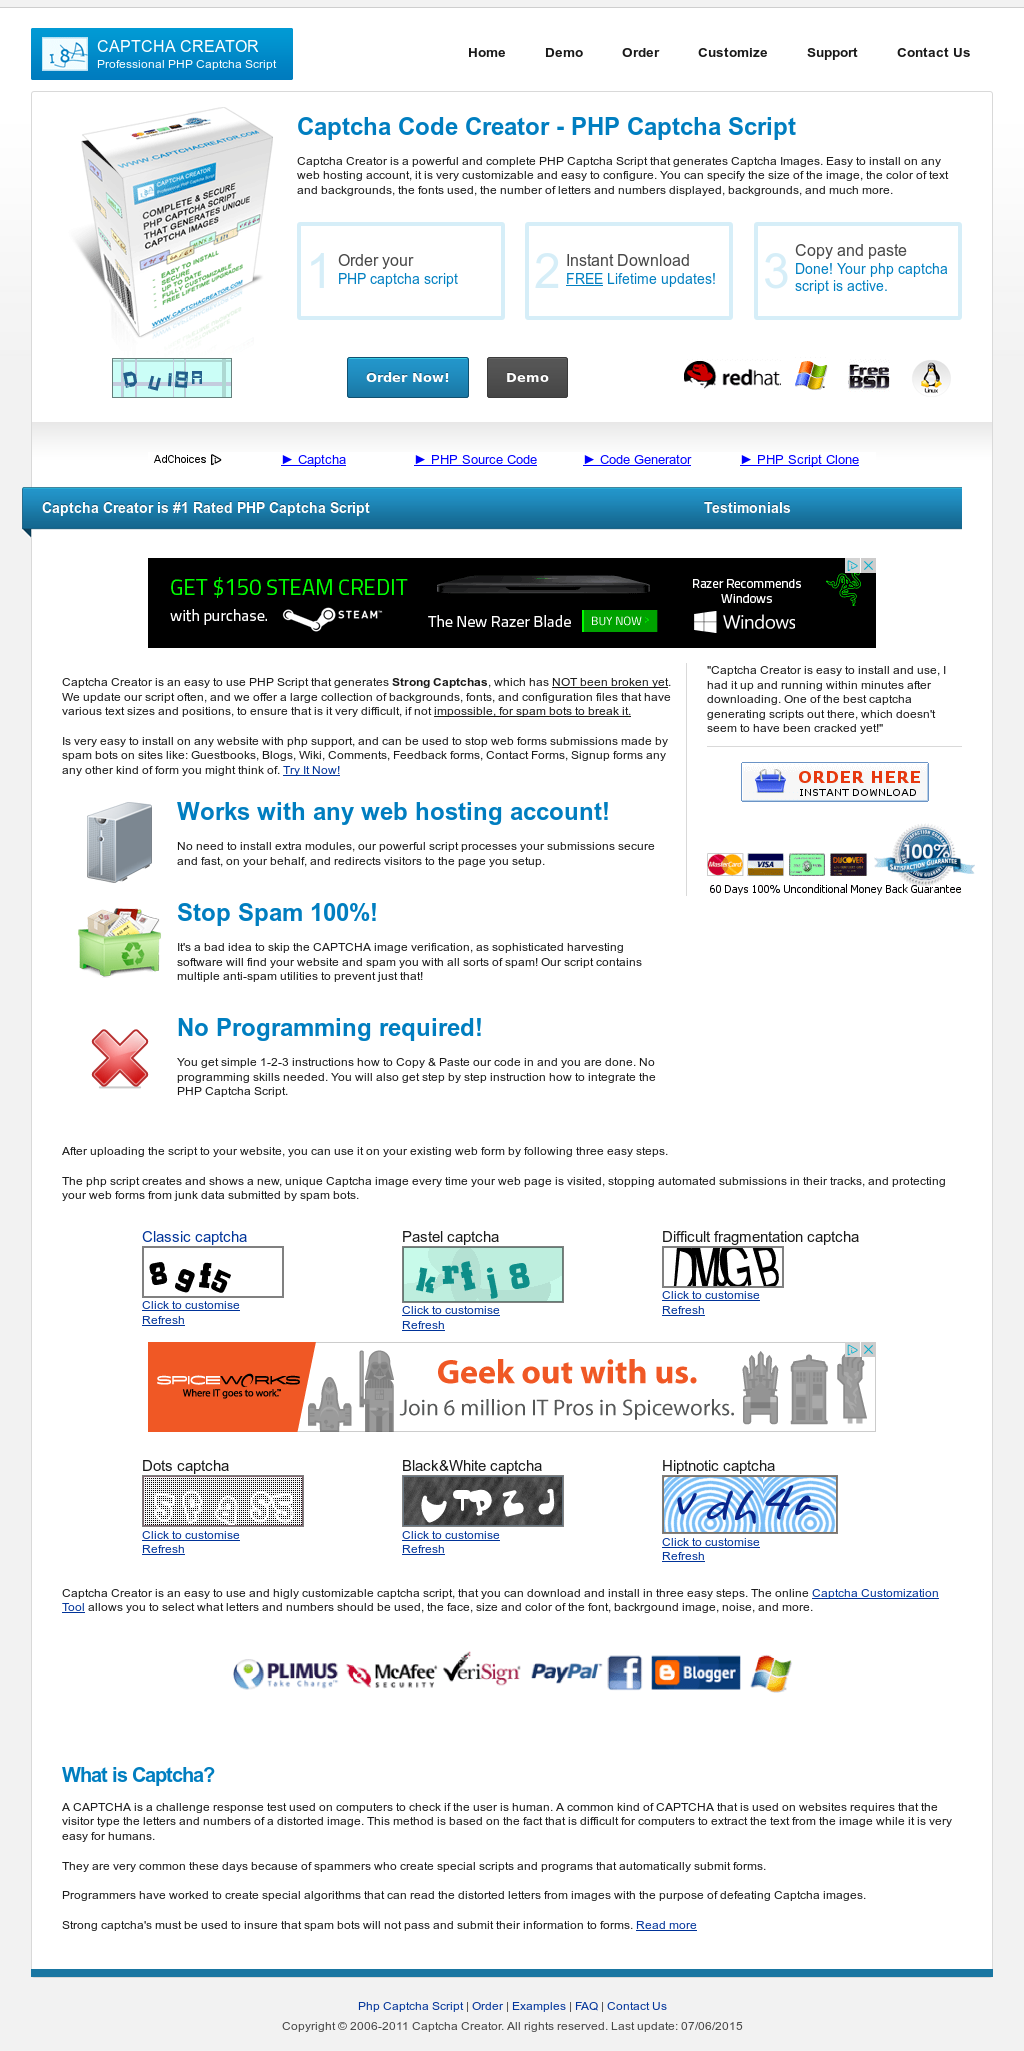 Captcha Creator Competitors, Revenue and Employees - Owler Company